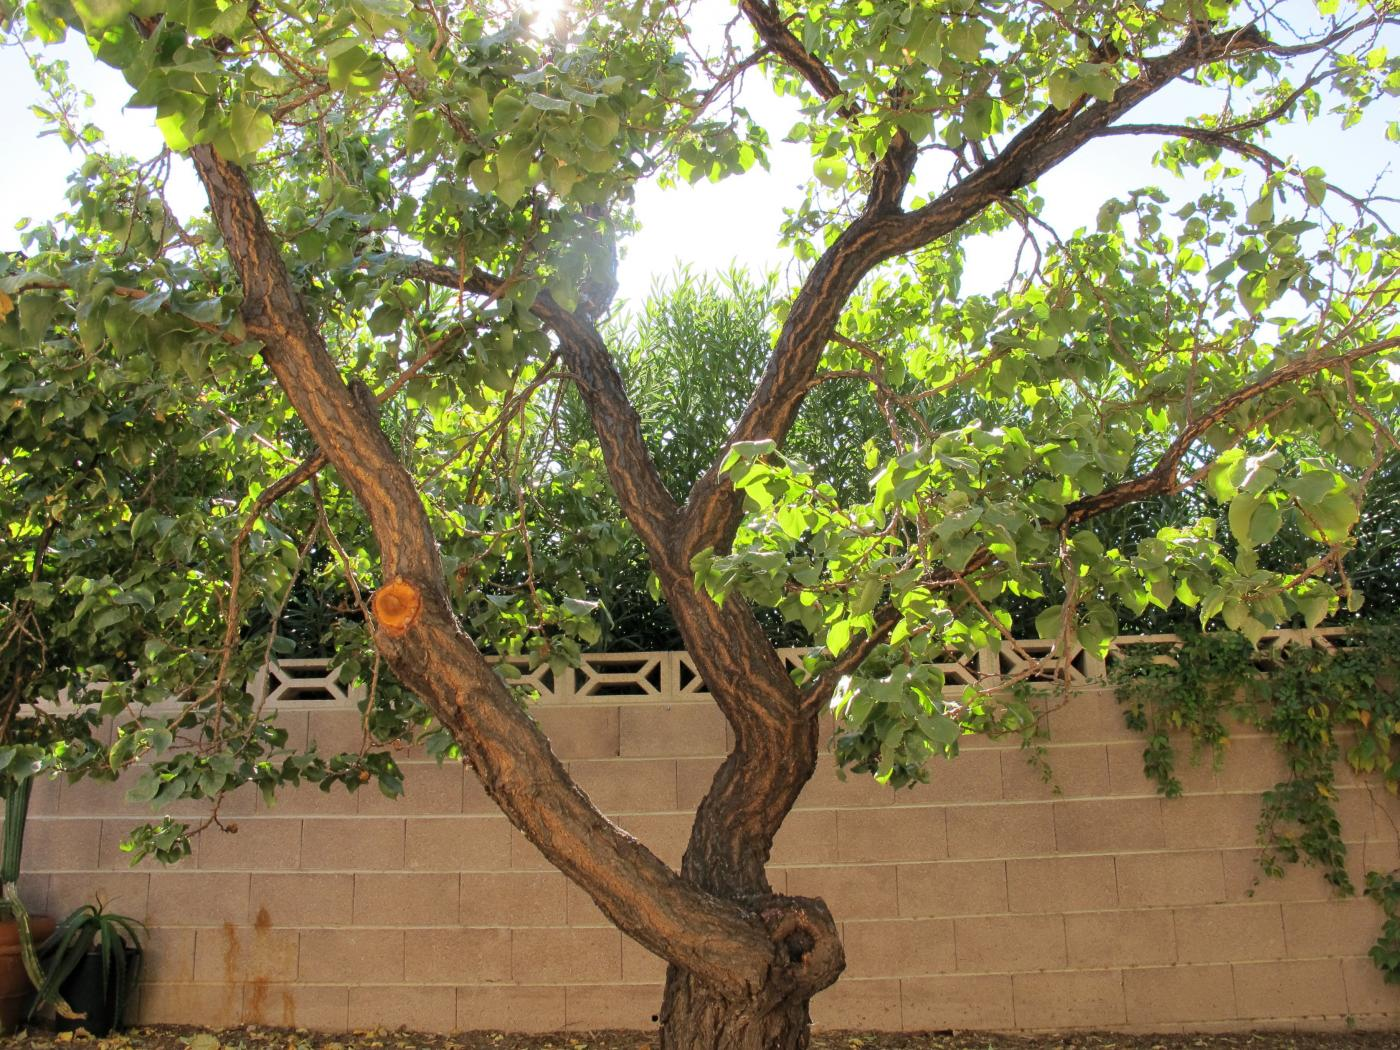 An older apricot tree, one type of fruit tree that will not thrive as temperatures trend upward